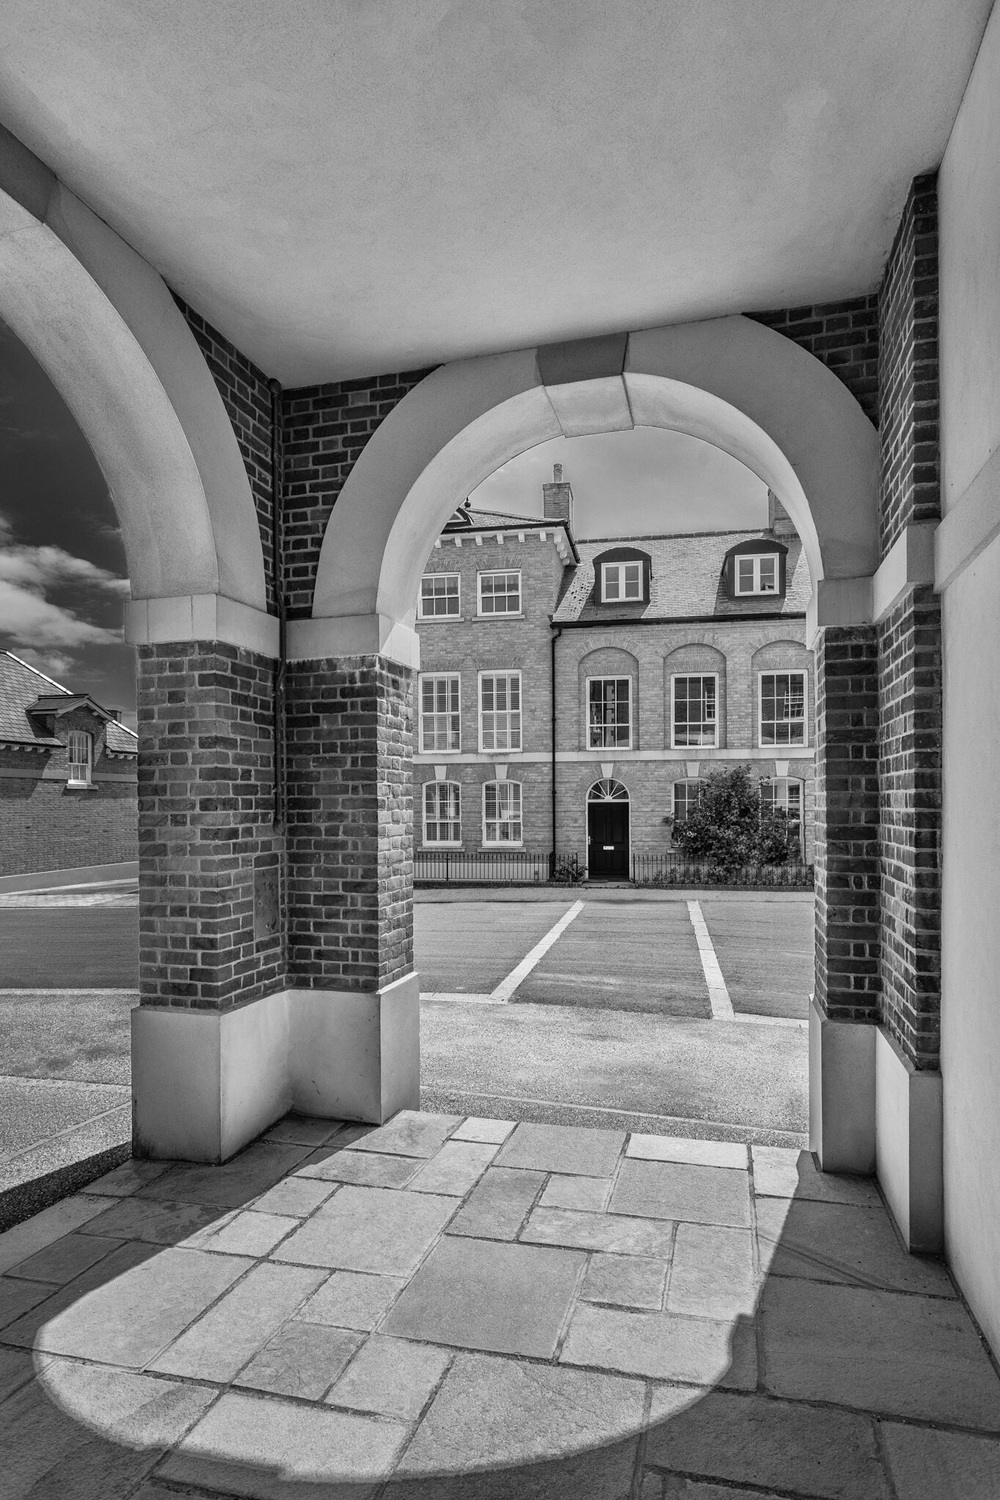 Poundbury, Dorchester - commercial architectural photography by Rick McEvoy